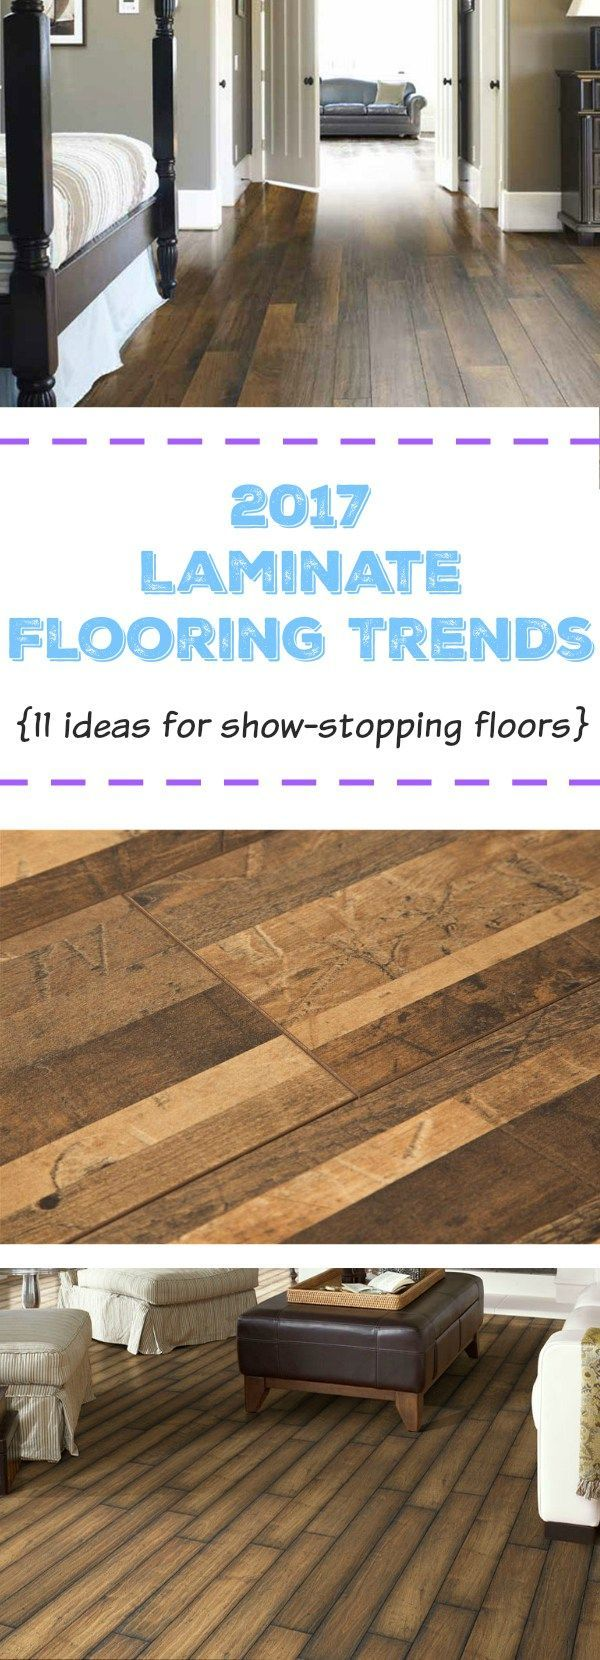 2017 laminate flooring trends: 11 ideas for show stopping floors